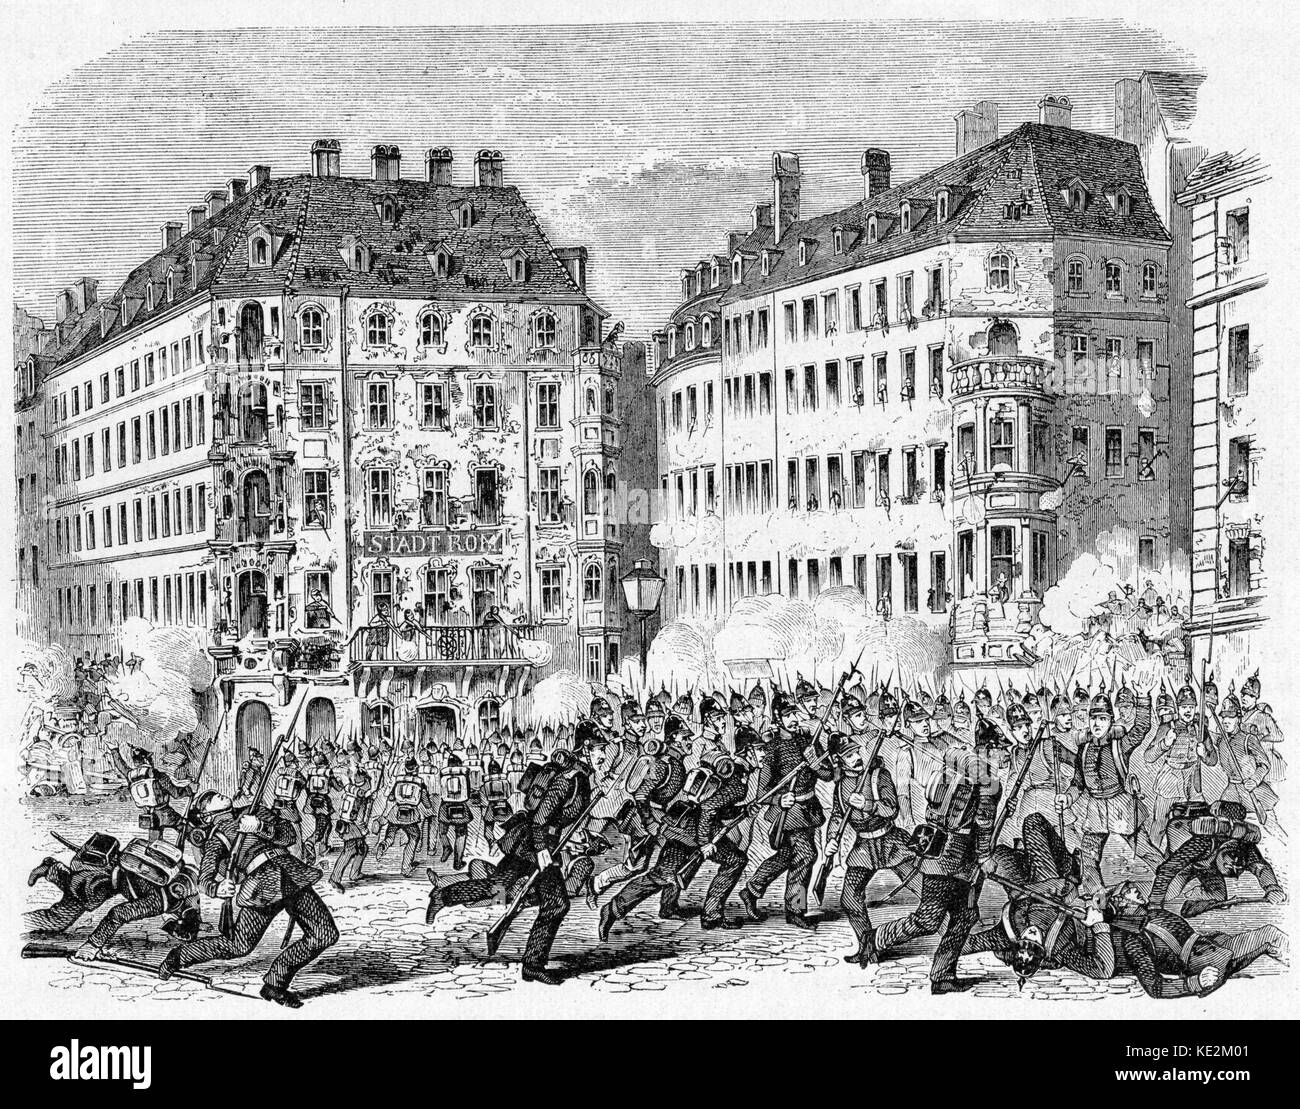 Dresden riots in 1848, engraving. The caption reads : 'Barricade in the grosse Frauen Strasse  on 6th May 1848', - Stock Image